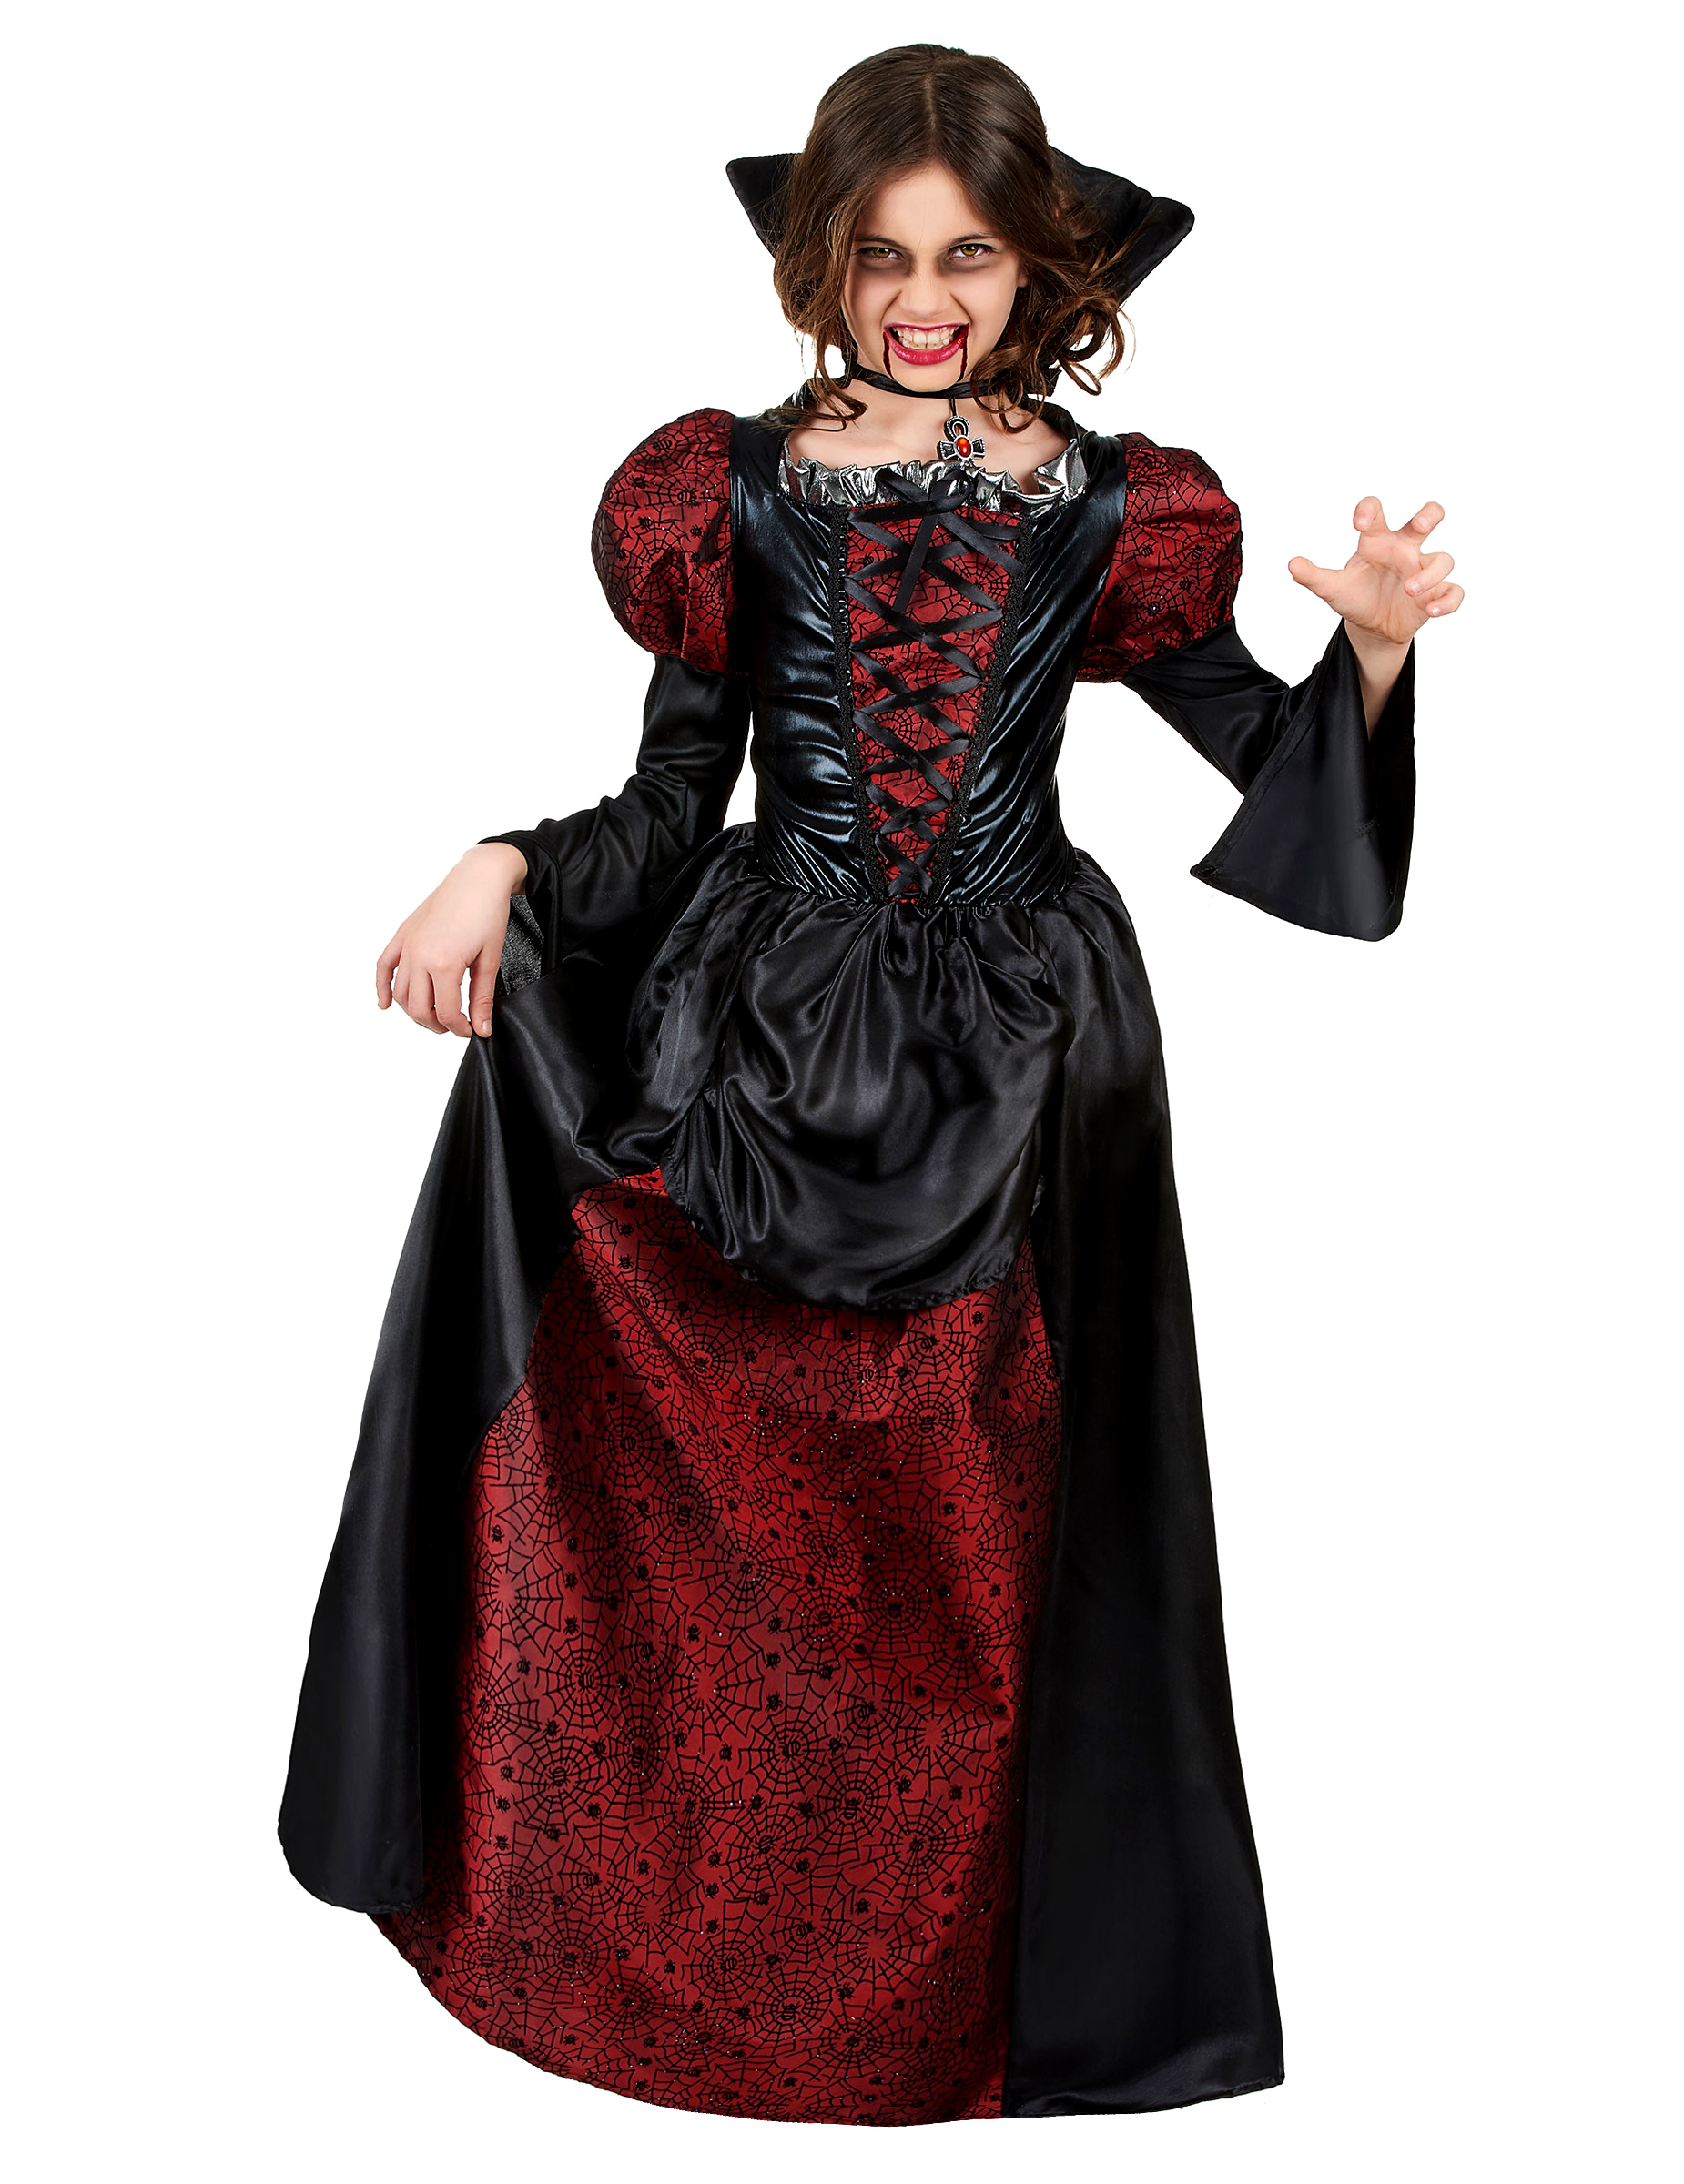 D guisement vampire fille halloween - Deguisement fille halloween ...